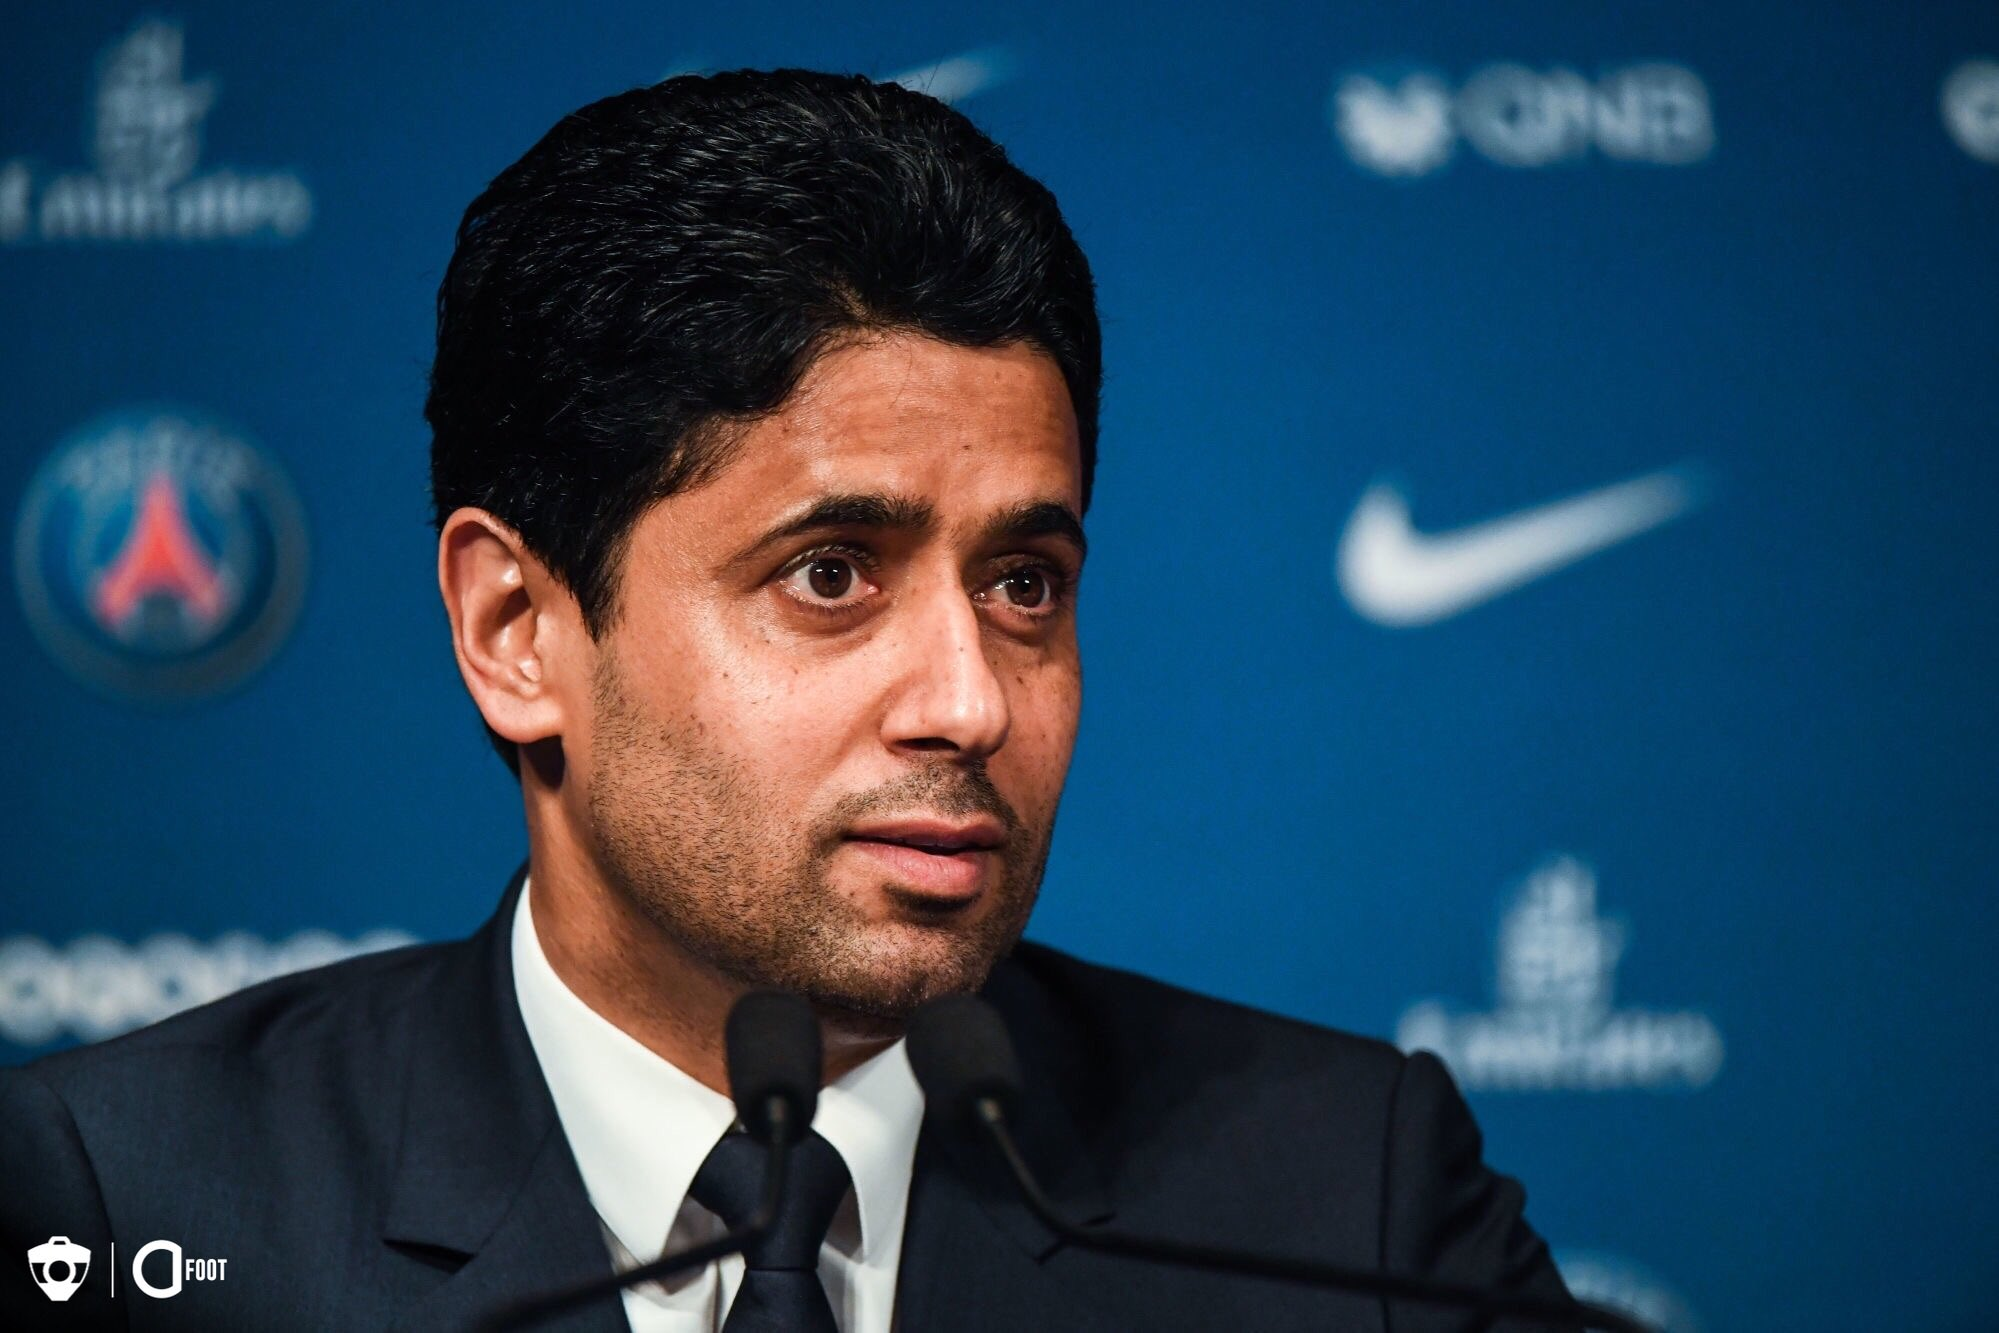 PSG President Al-Khelaifi Charged In Corruption Probe